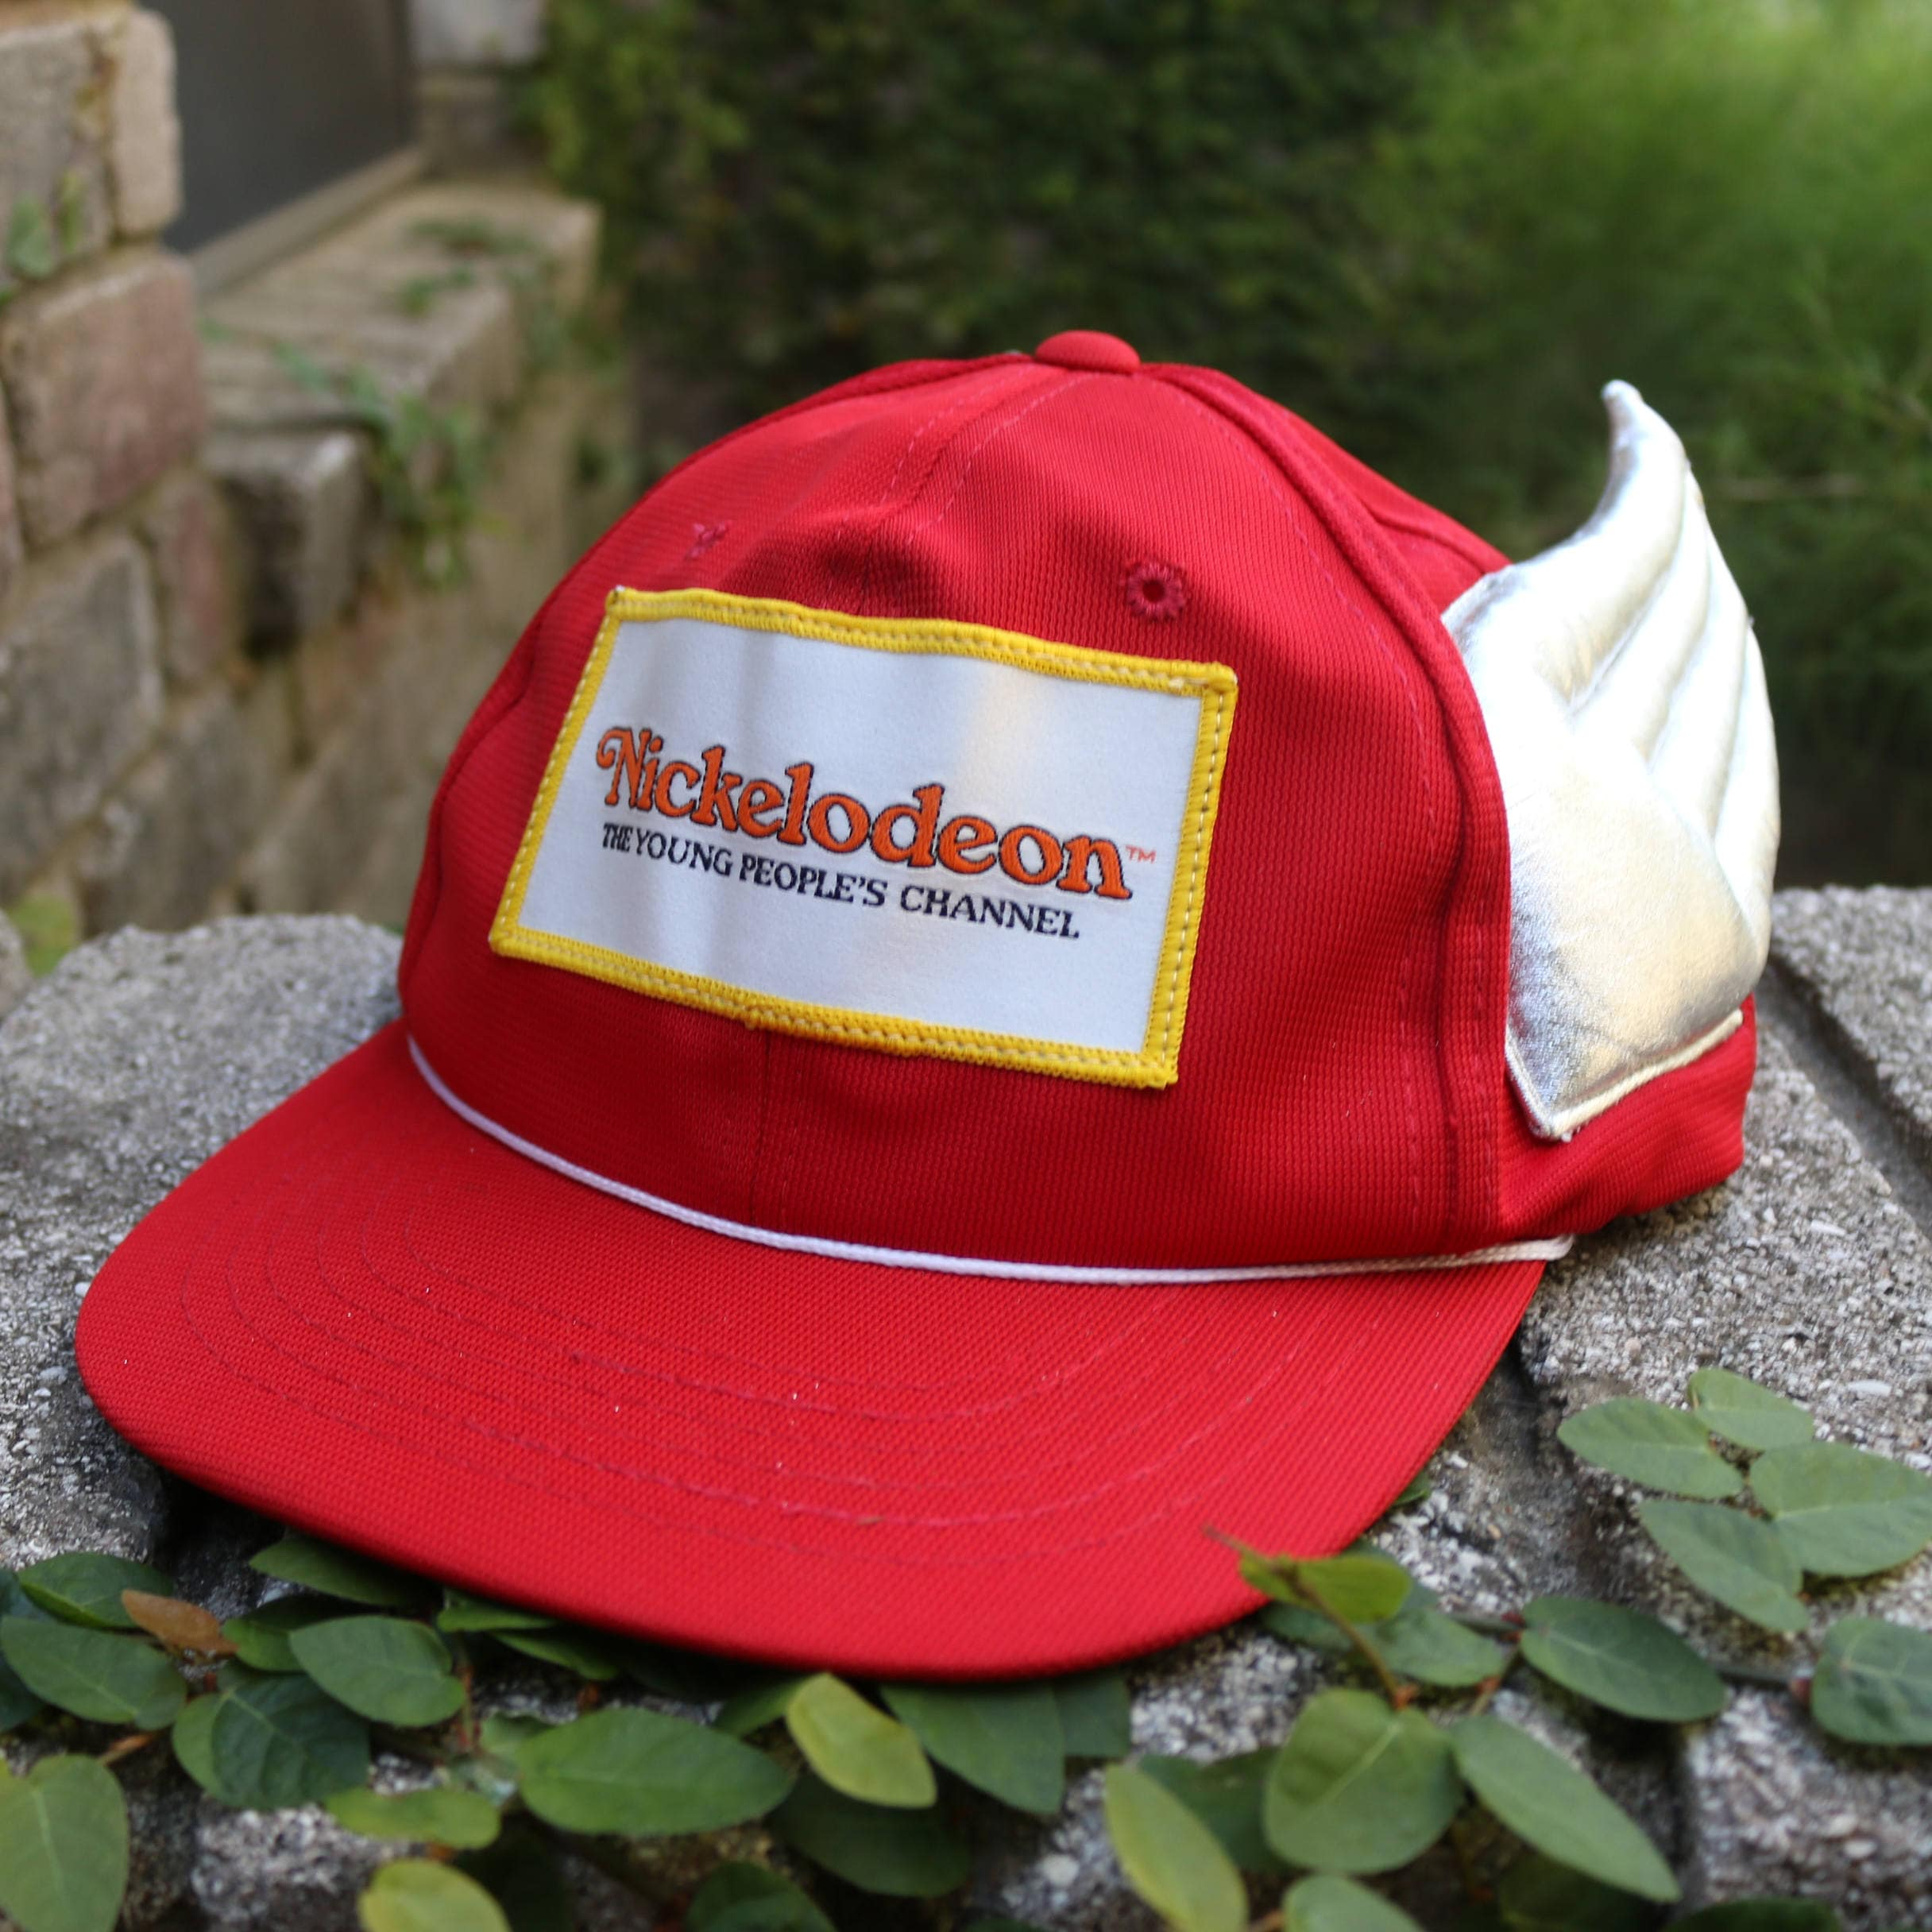 2b2603e6c82 ... wholesale vintage deadstock 1978 nickelodeon hat the young peoples etsy  0973f c8c77